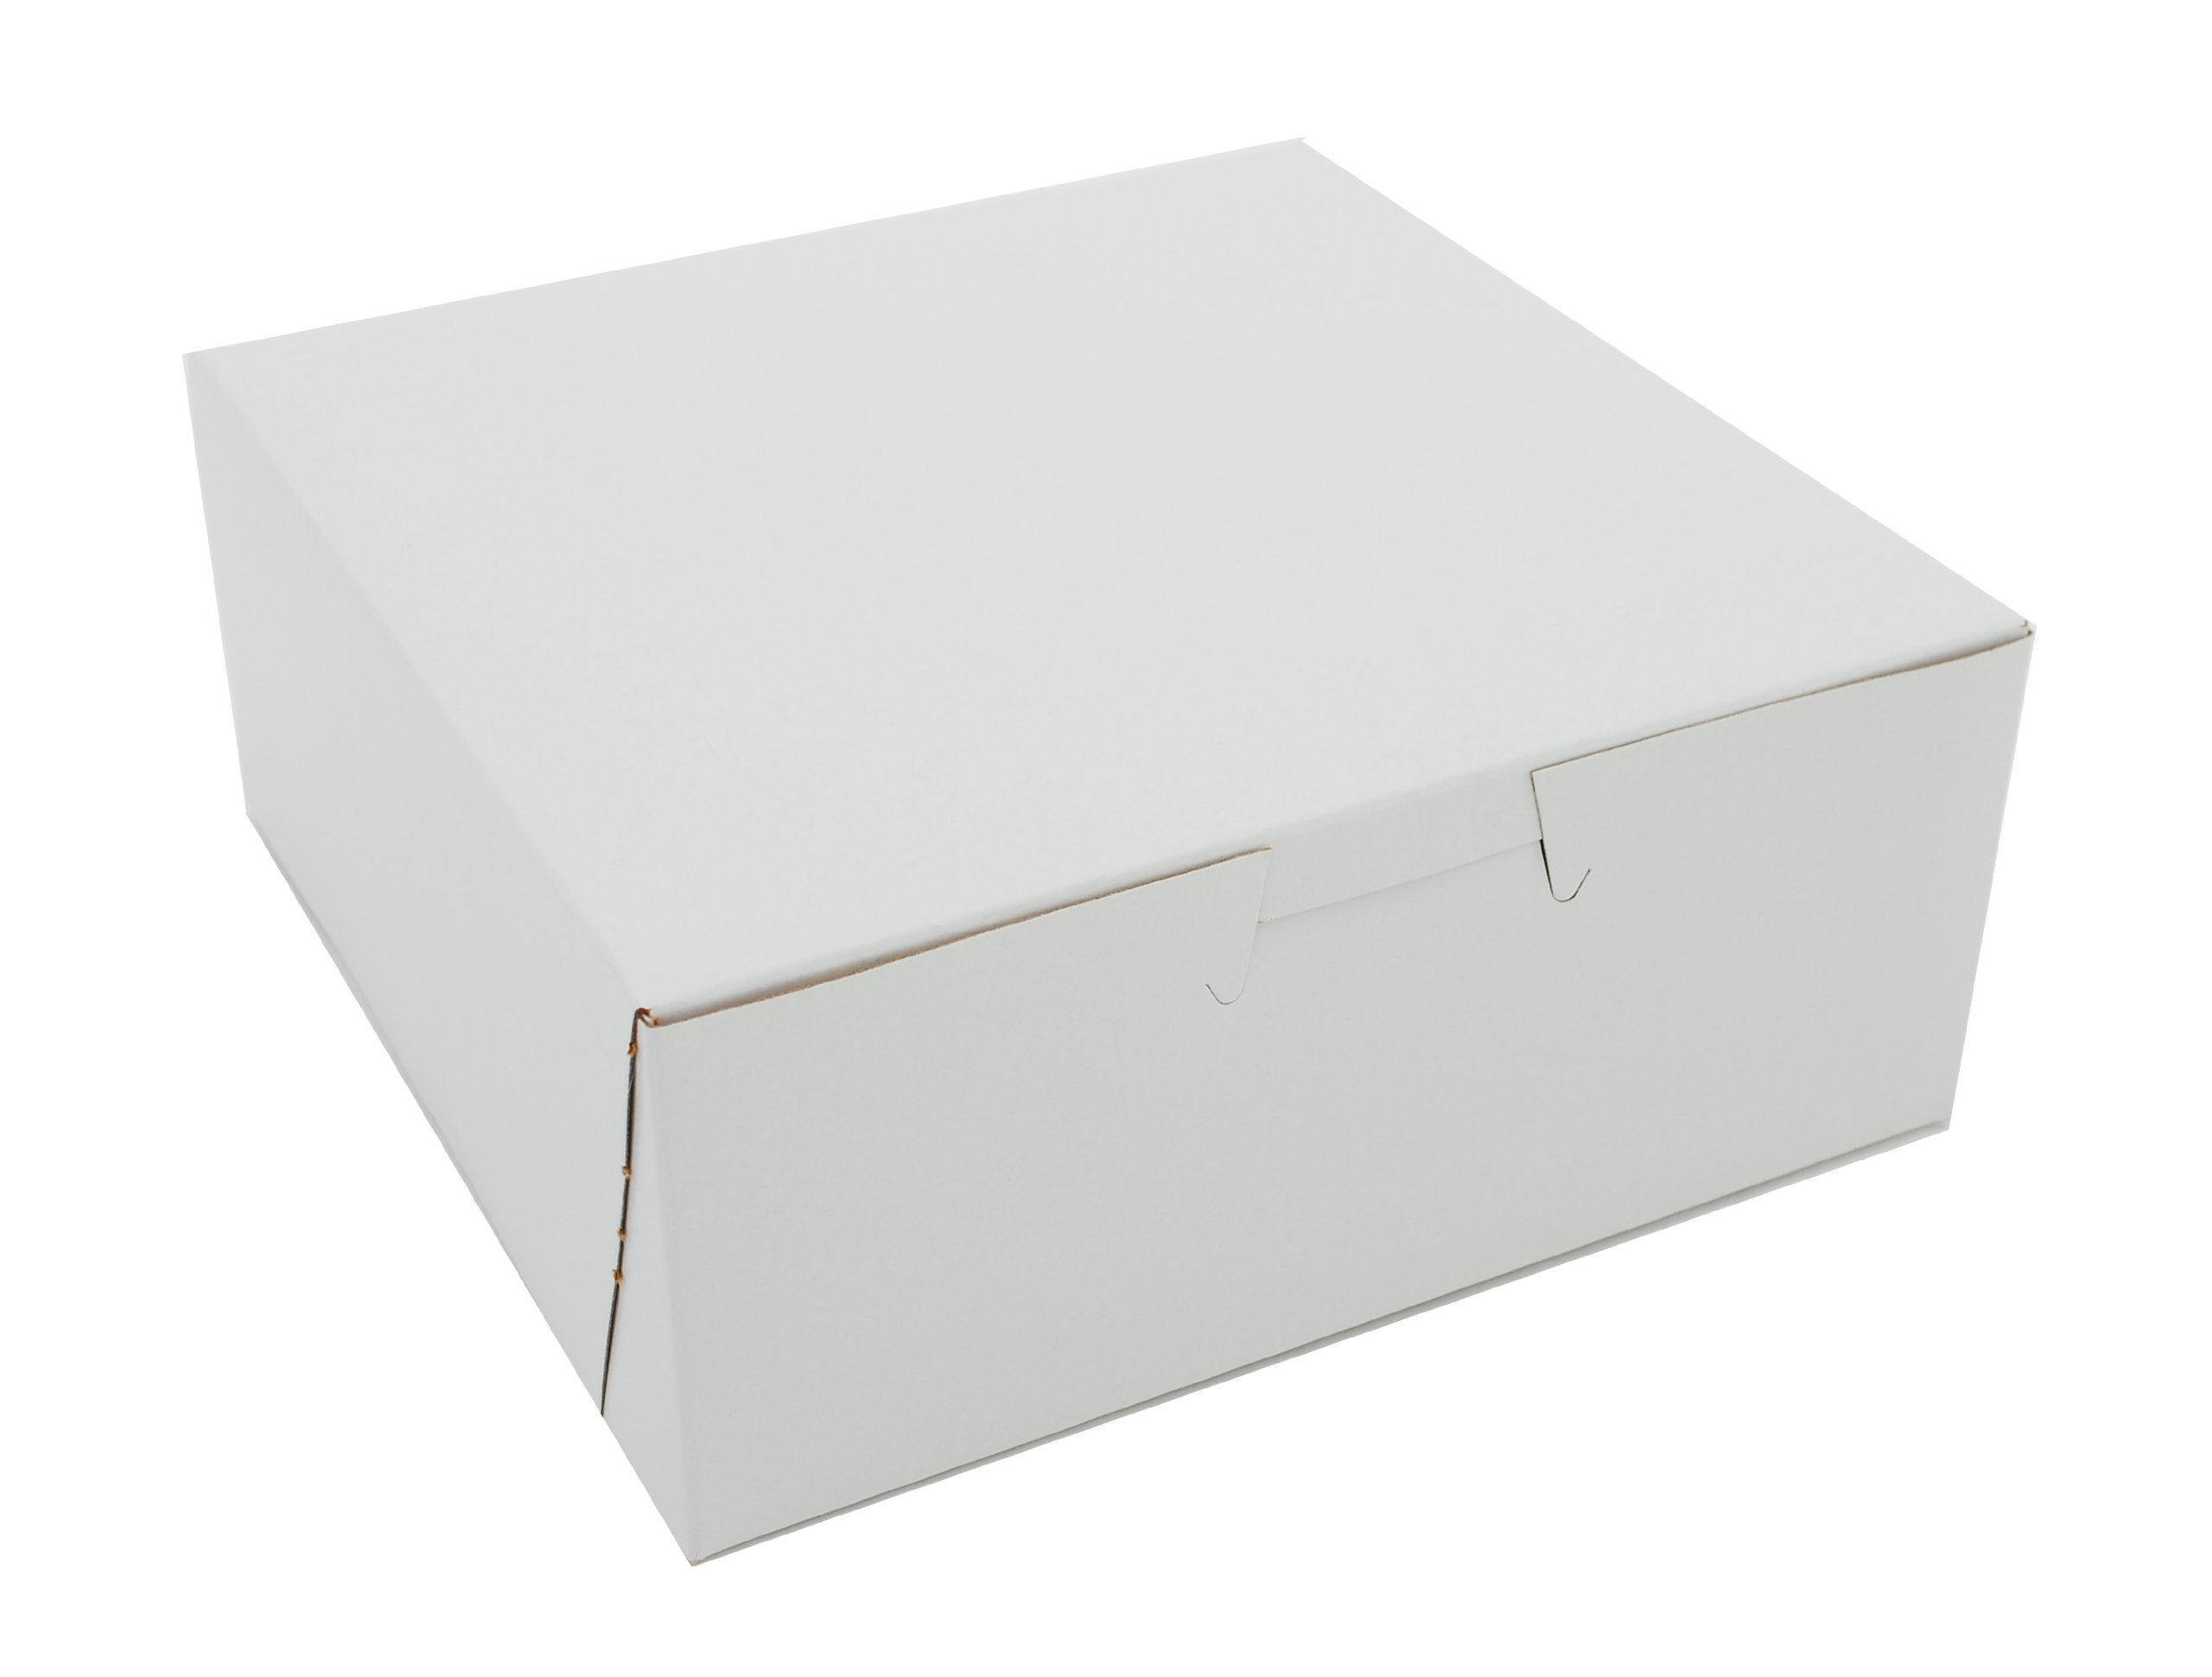 Southern Champion Tray 0901 Premium Clay Coated Kraft Paperboard White Non-Window Lock Corner Bakery Box, 6'' Length x 6'' Width x 2-1/2'' Height (Case of 250) by Southern Champion Tray